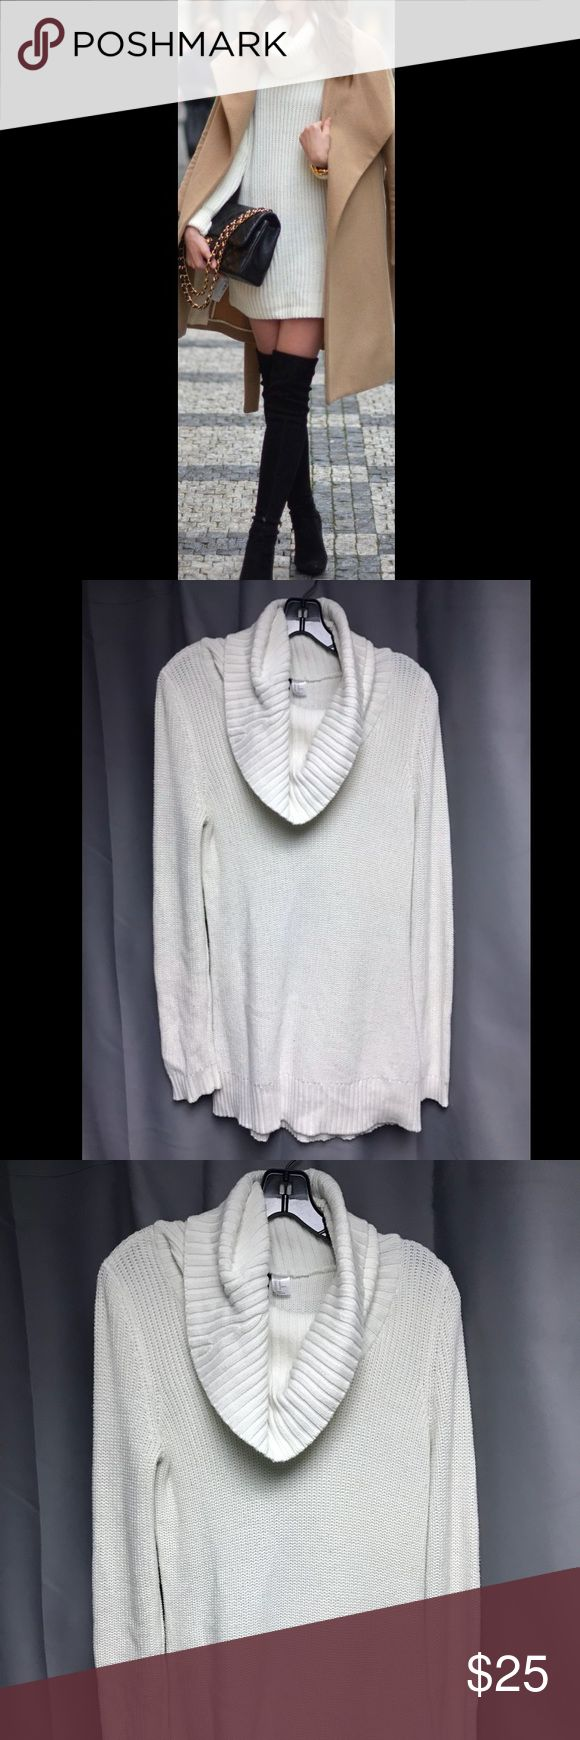 🌟White Turtleneck Sweater Dress🌟 Lightweight turtle neck sweater dress Pair with tights or leggings. Wear alone as a dress like blog post picture!  Size: Medium  Fits true to size  Length from shoulder to bottom of skirt: 31 in    In GREAT condition, lightly worn H&M Sweaters Cowl & Turtlenecks